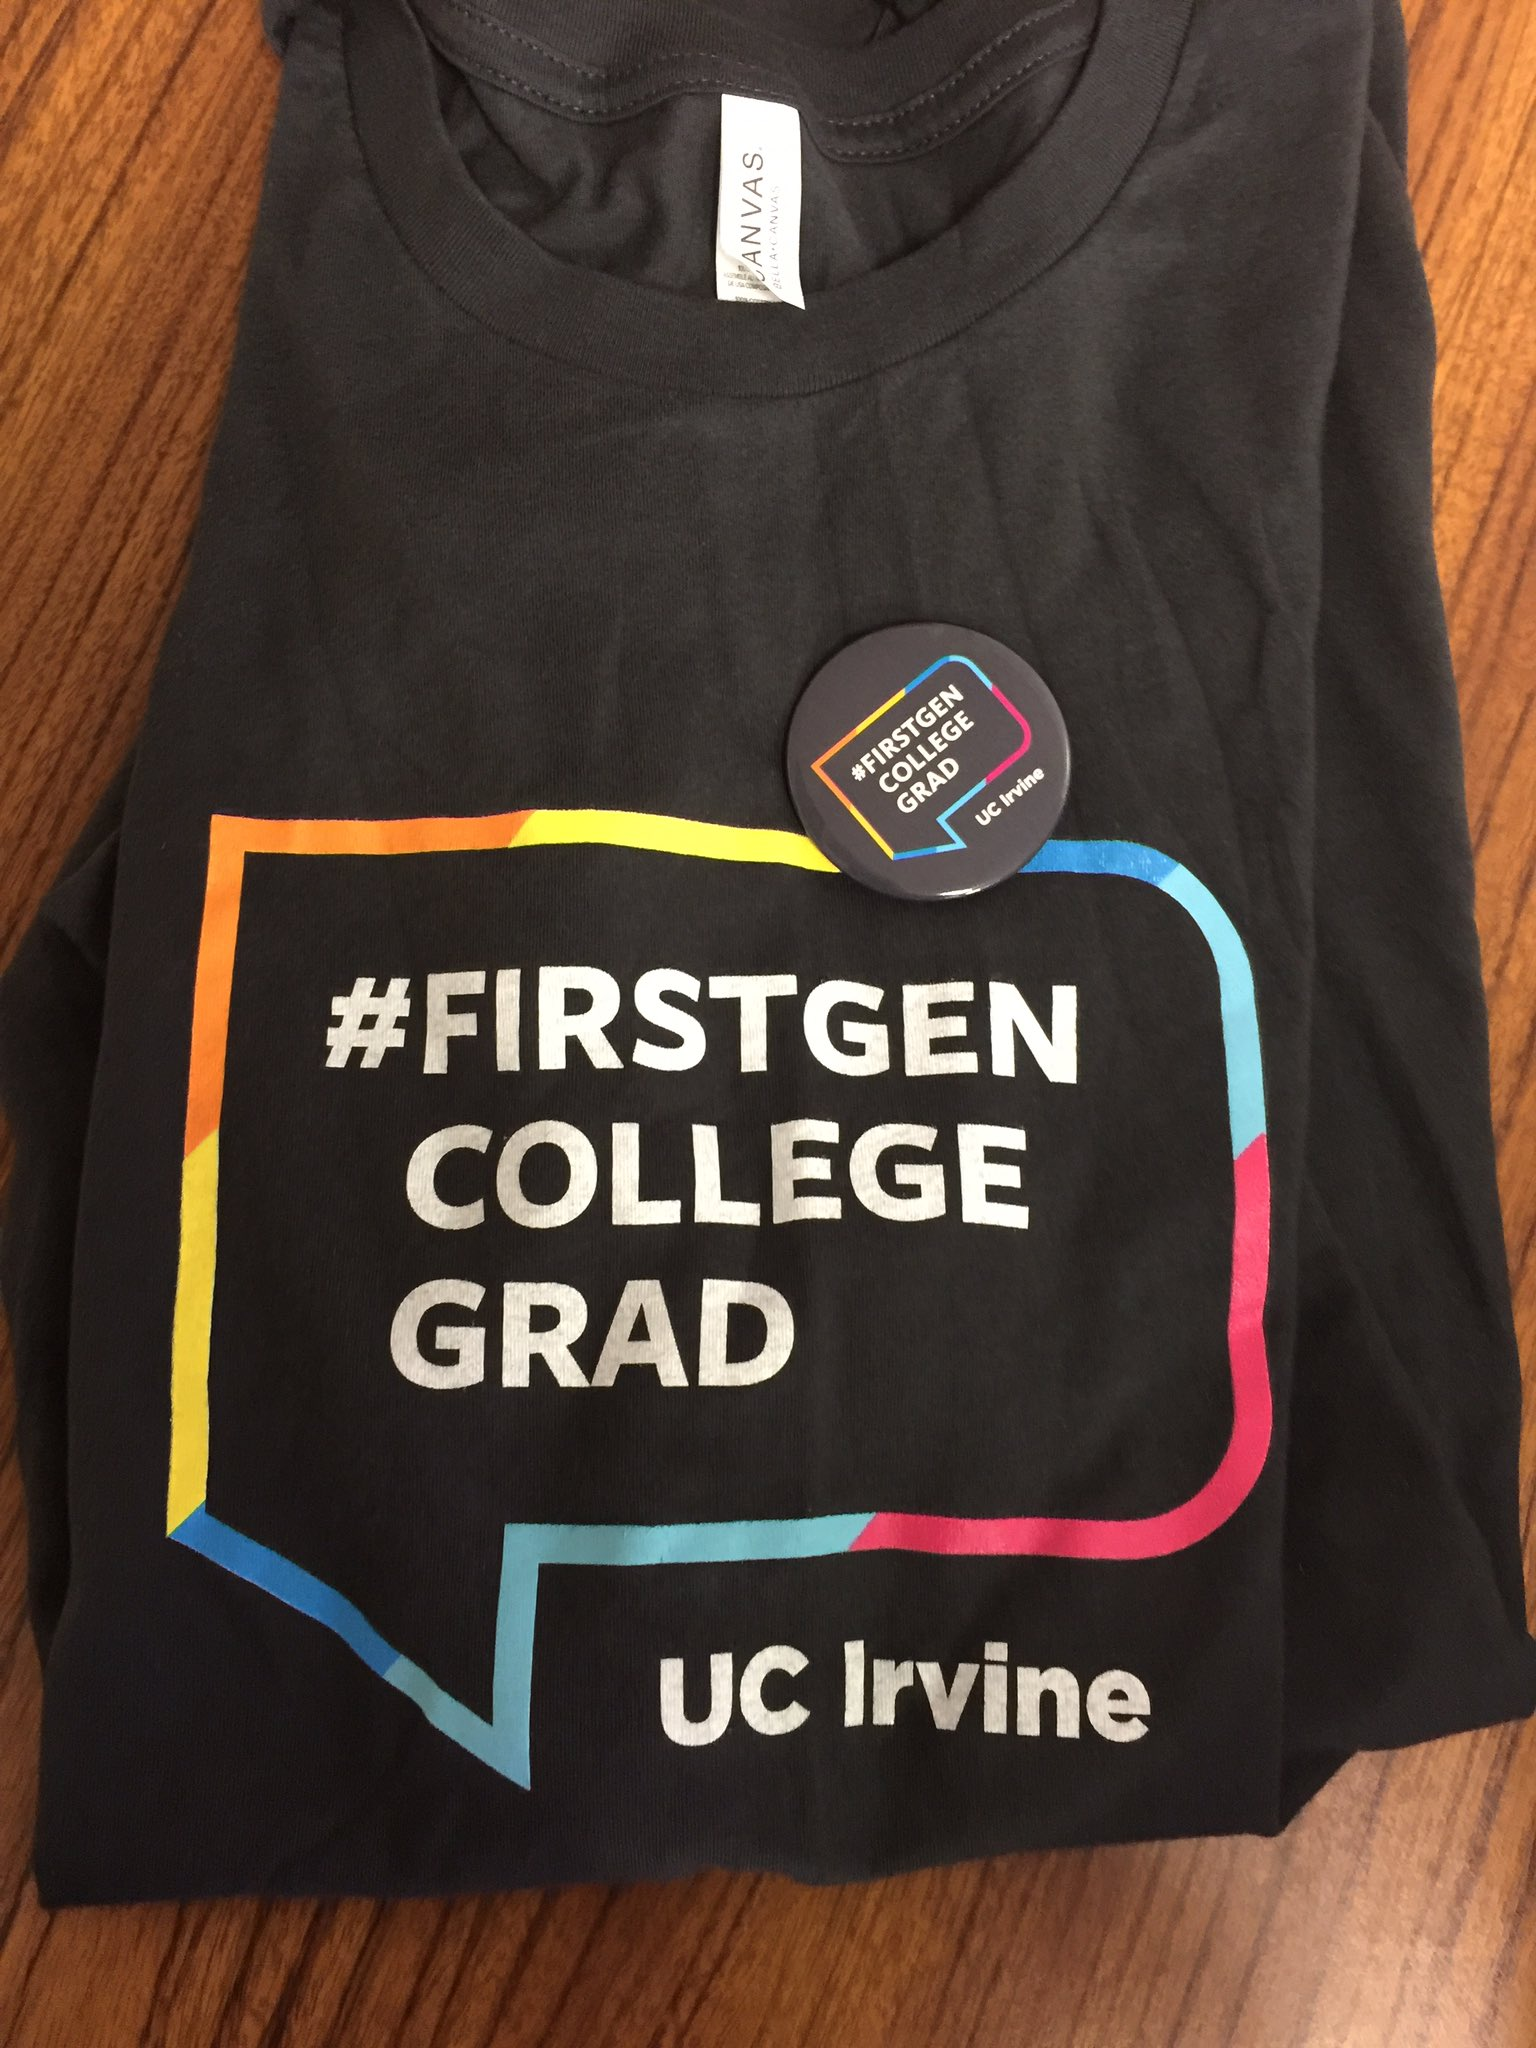 Thumbnail for First Generation Faculty Initiative - UC Irvine